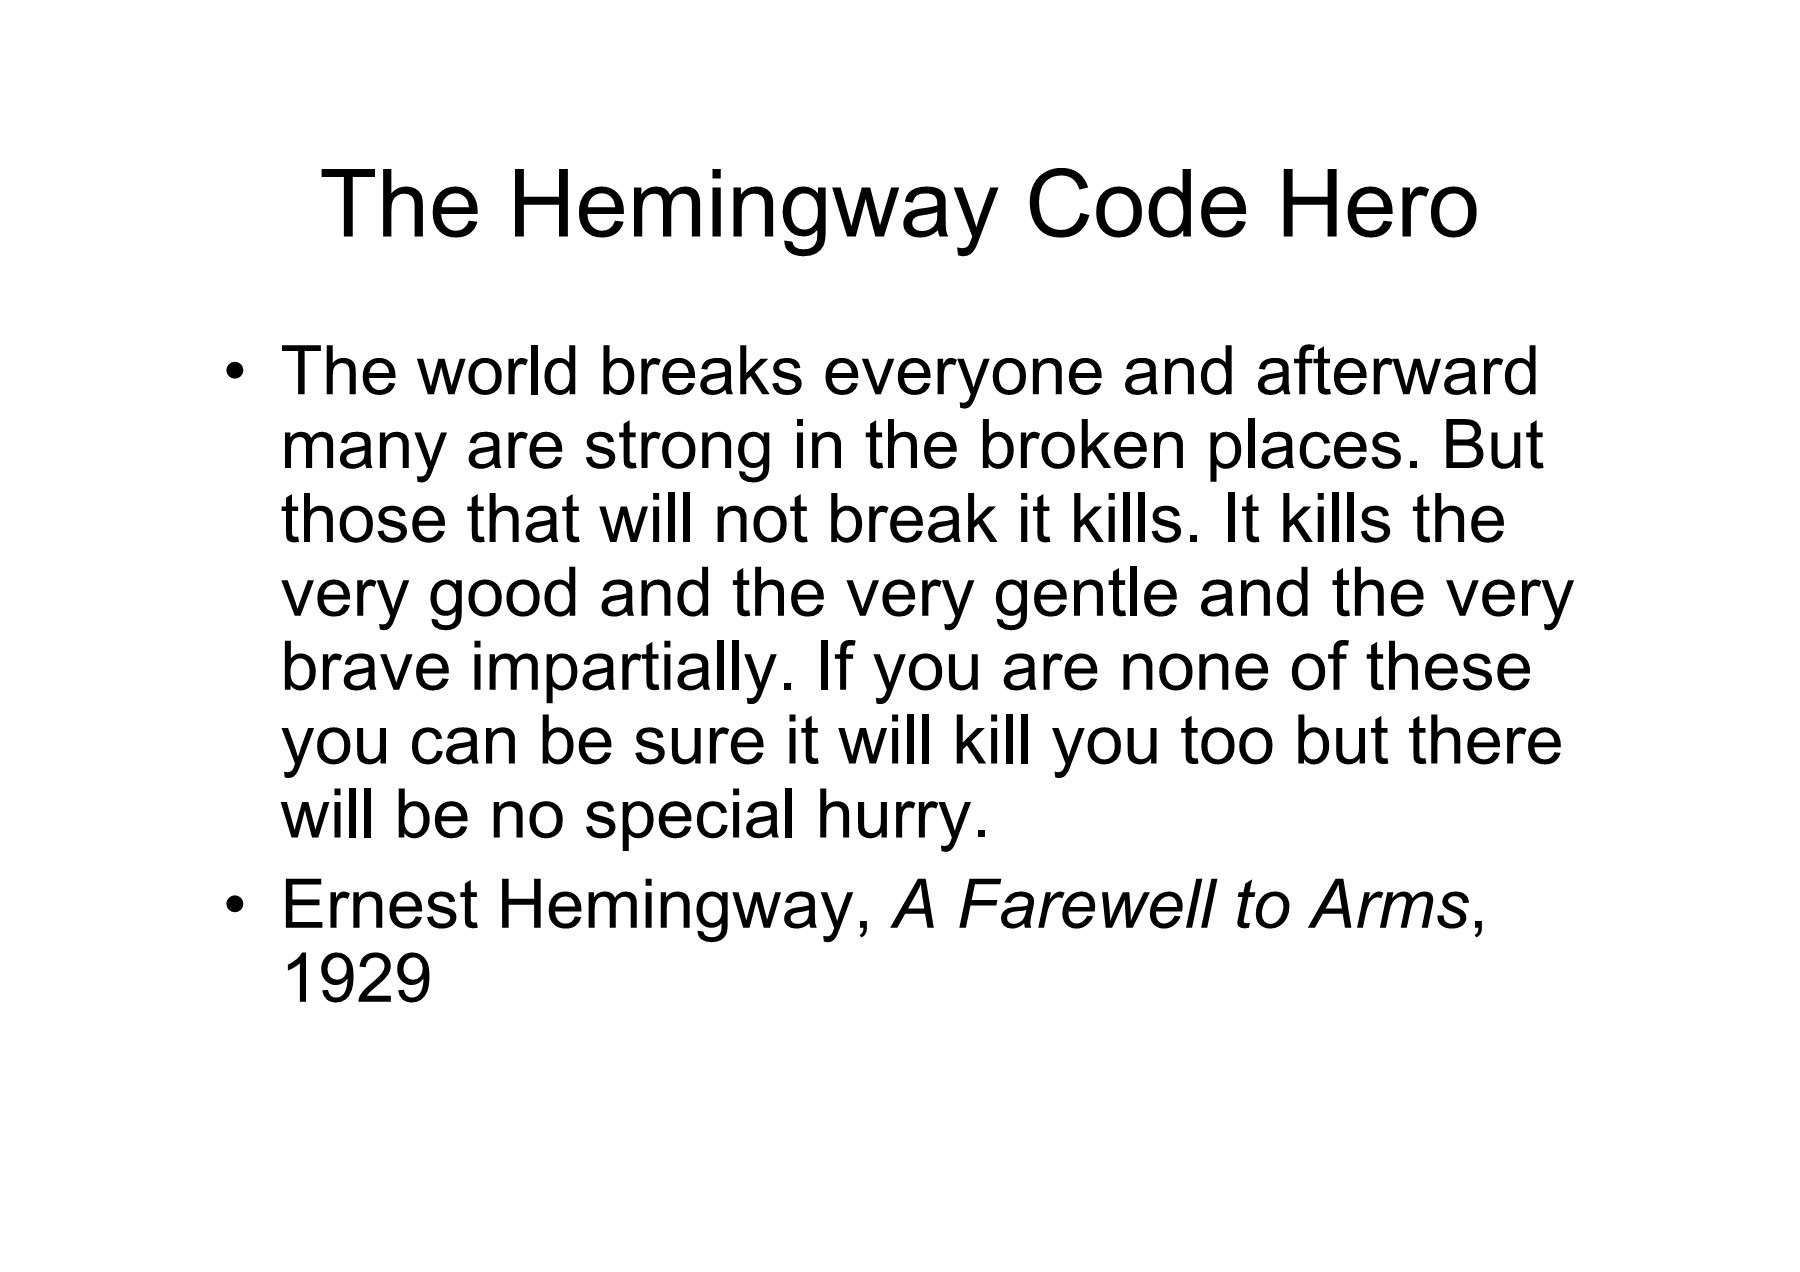 hemingway code hero essay example Need essay sample on hemingway's code hero: survival in the existential world - hemingway's code hero: survival in the existential world introduction we will write a cheap essay sample on hemingway's code hero: survival in the existential world specifically for you for only $1290/page.